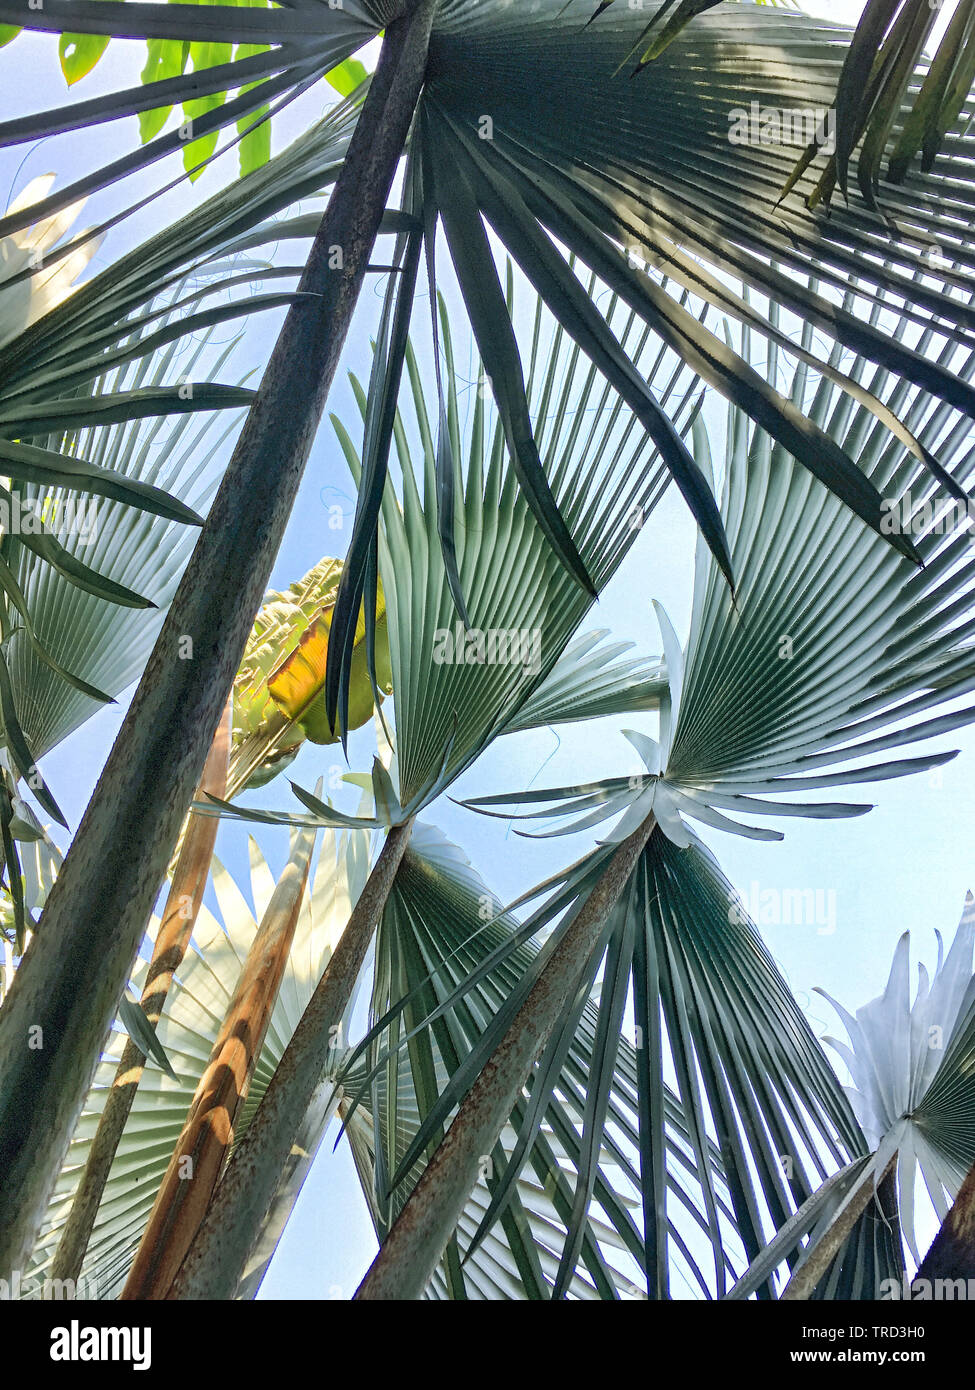 FAN PALMS IN HARMONY CREATING WONDERFUL NATURAL DESIGN - Stock Image